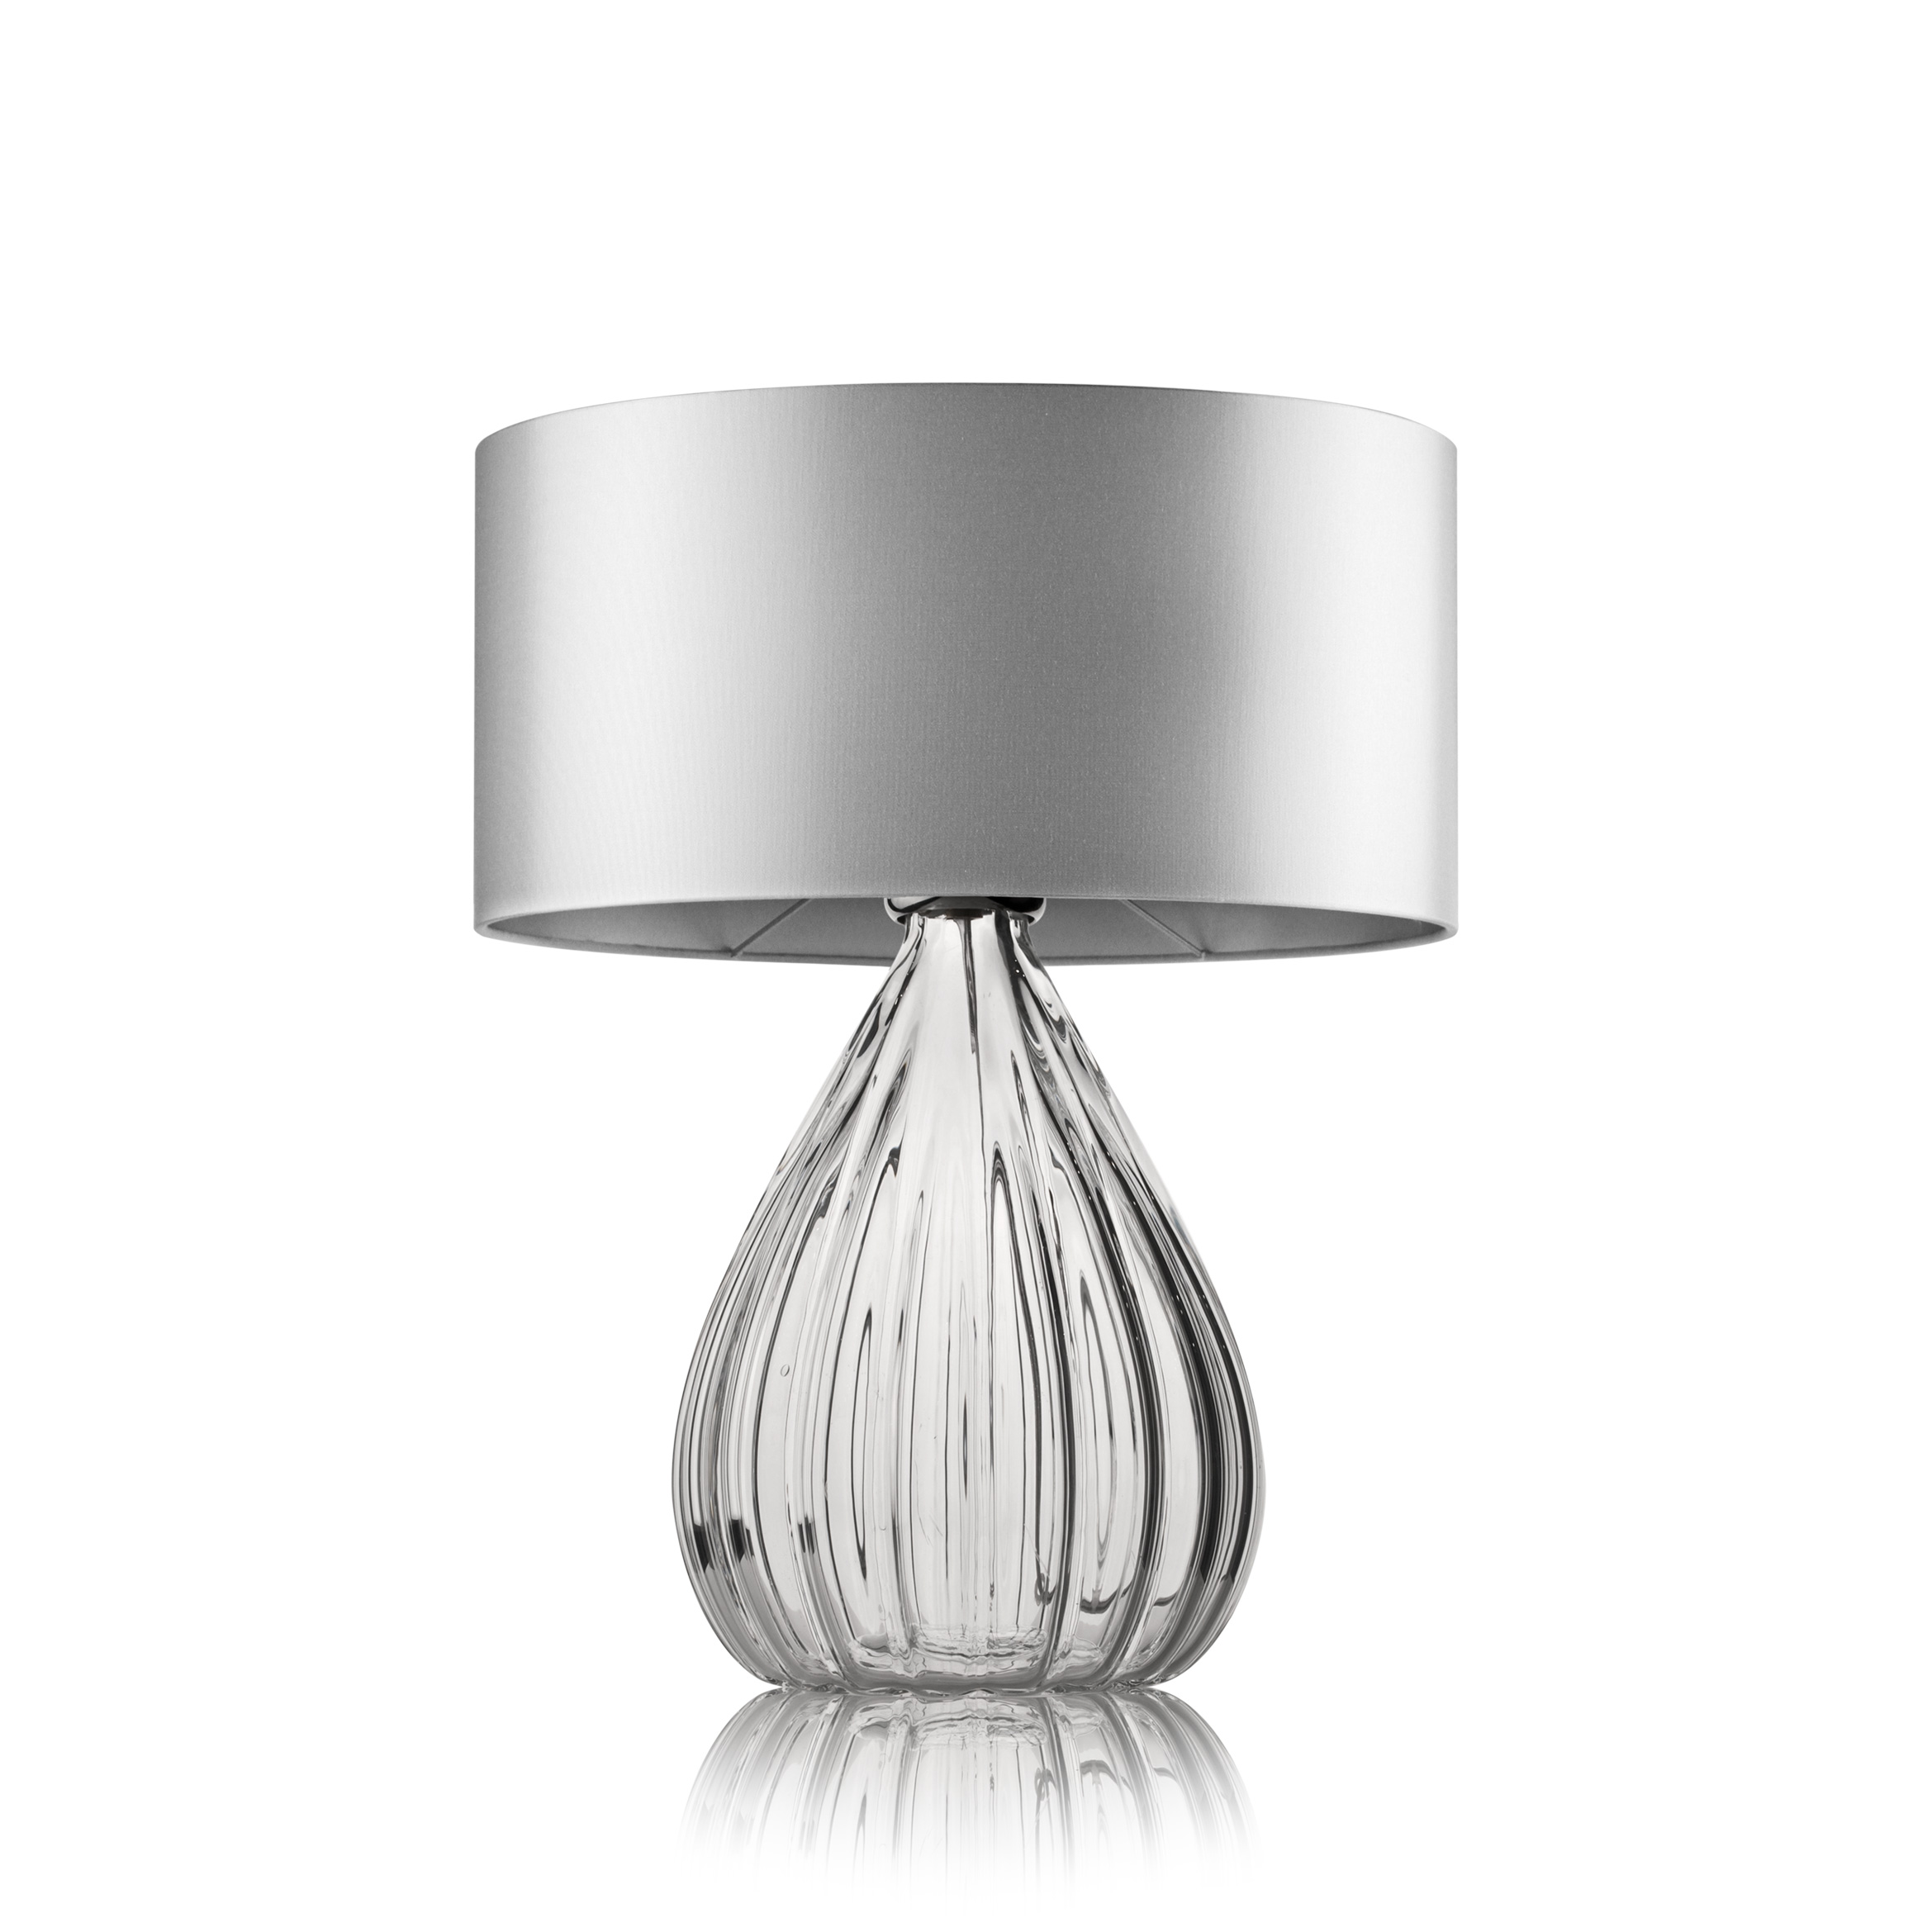 Gemma villaverde london villaverde london gemma murano table lamp clear square aloadofball Choice Image